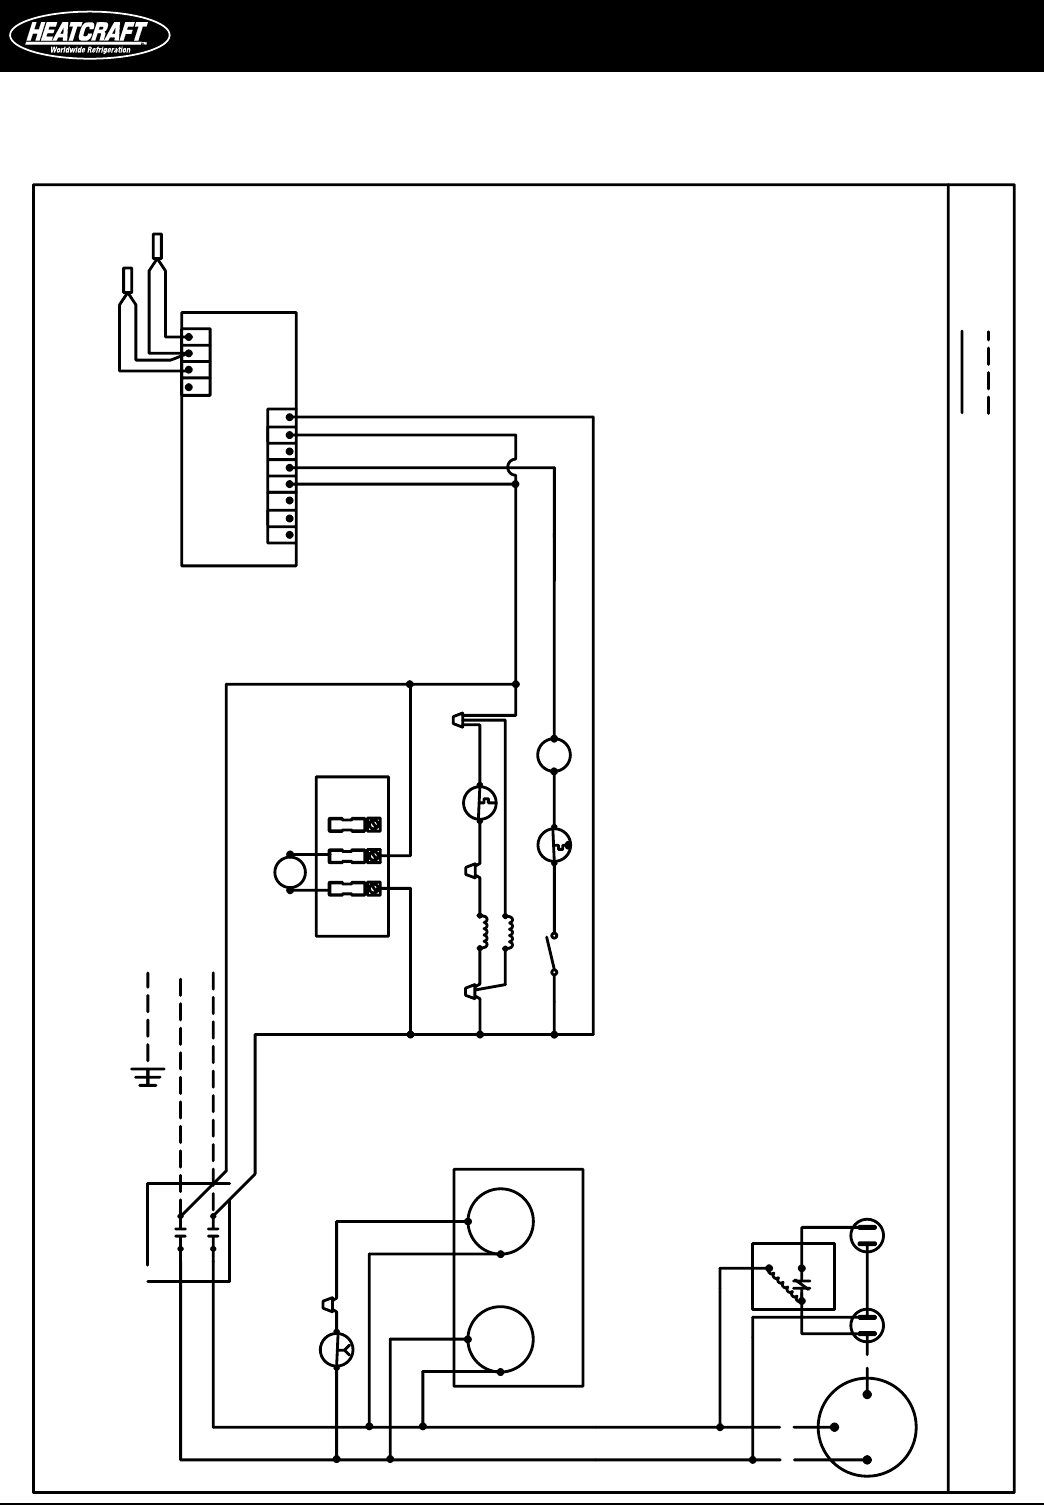 55587f91 c859 def4 0921 730c5709c050 bg10 page 16 of heatcraft refrigeration products refrigerator pro3 user defrost termination switch wiring diagram at n-0.co